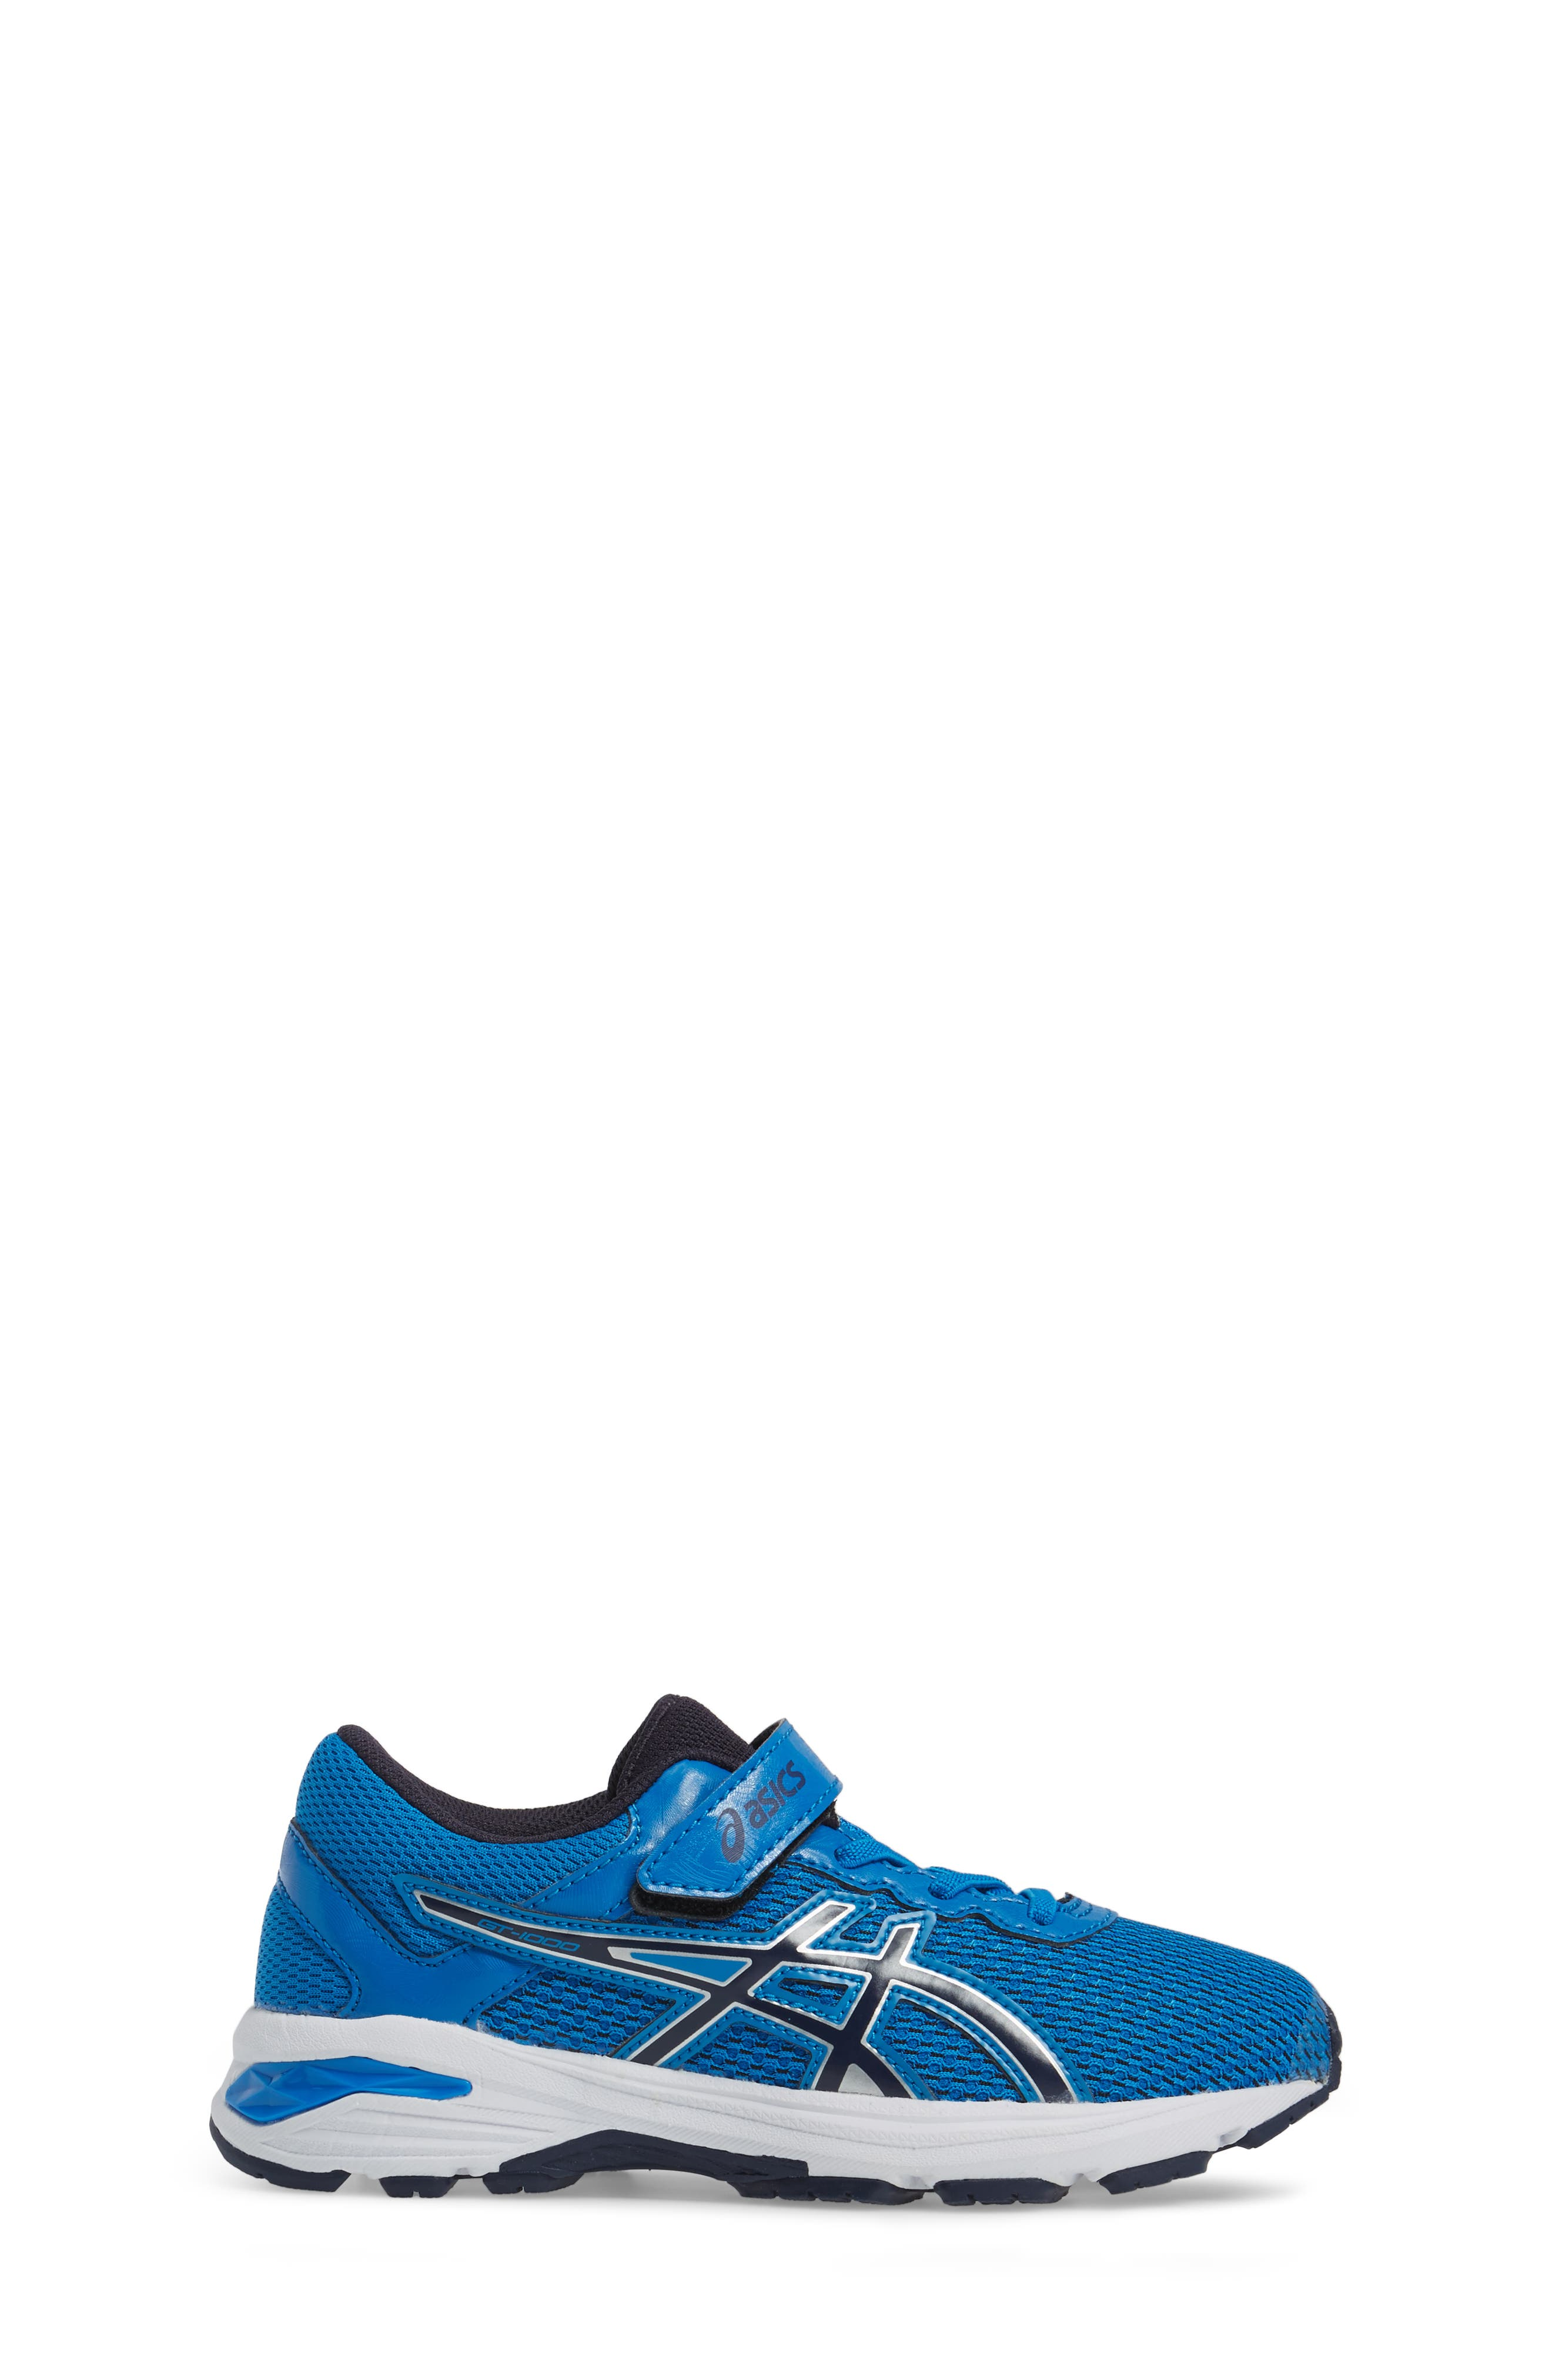 Asics GT-1000<sup>™</sup> 6 PS Sneaker,                             Alternate thumbnail 3, color,                             Blue/ Peacock